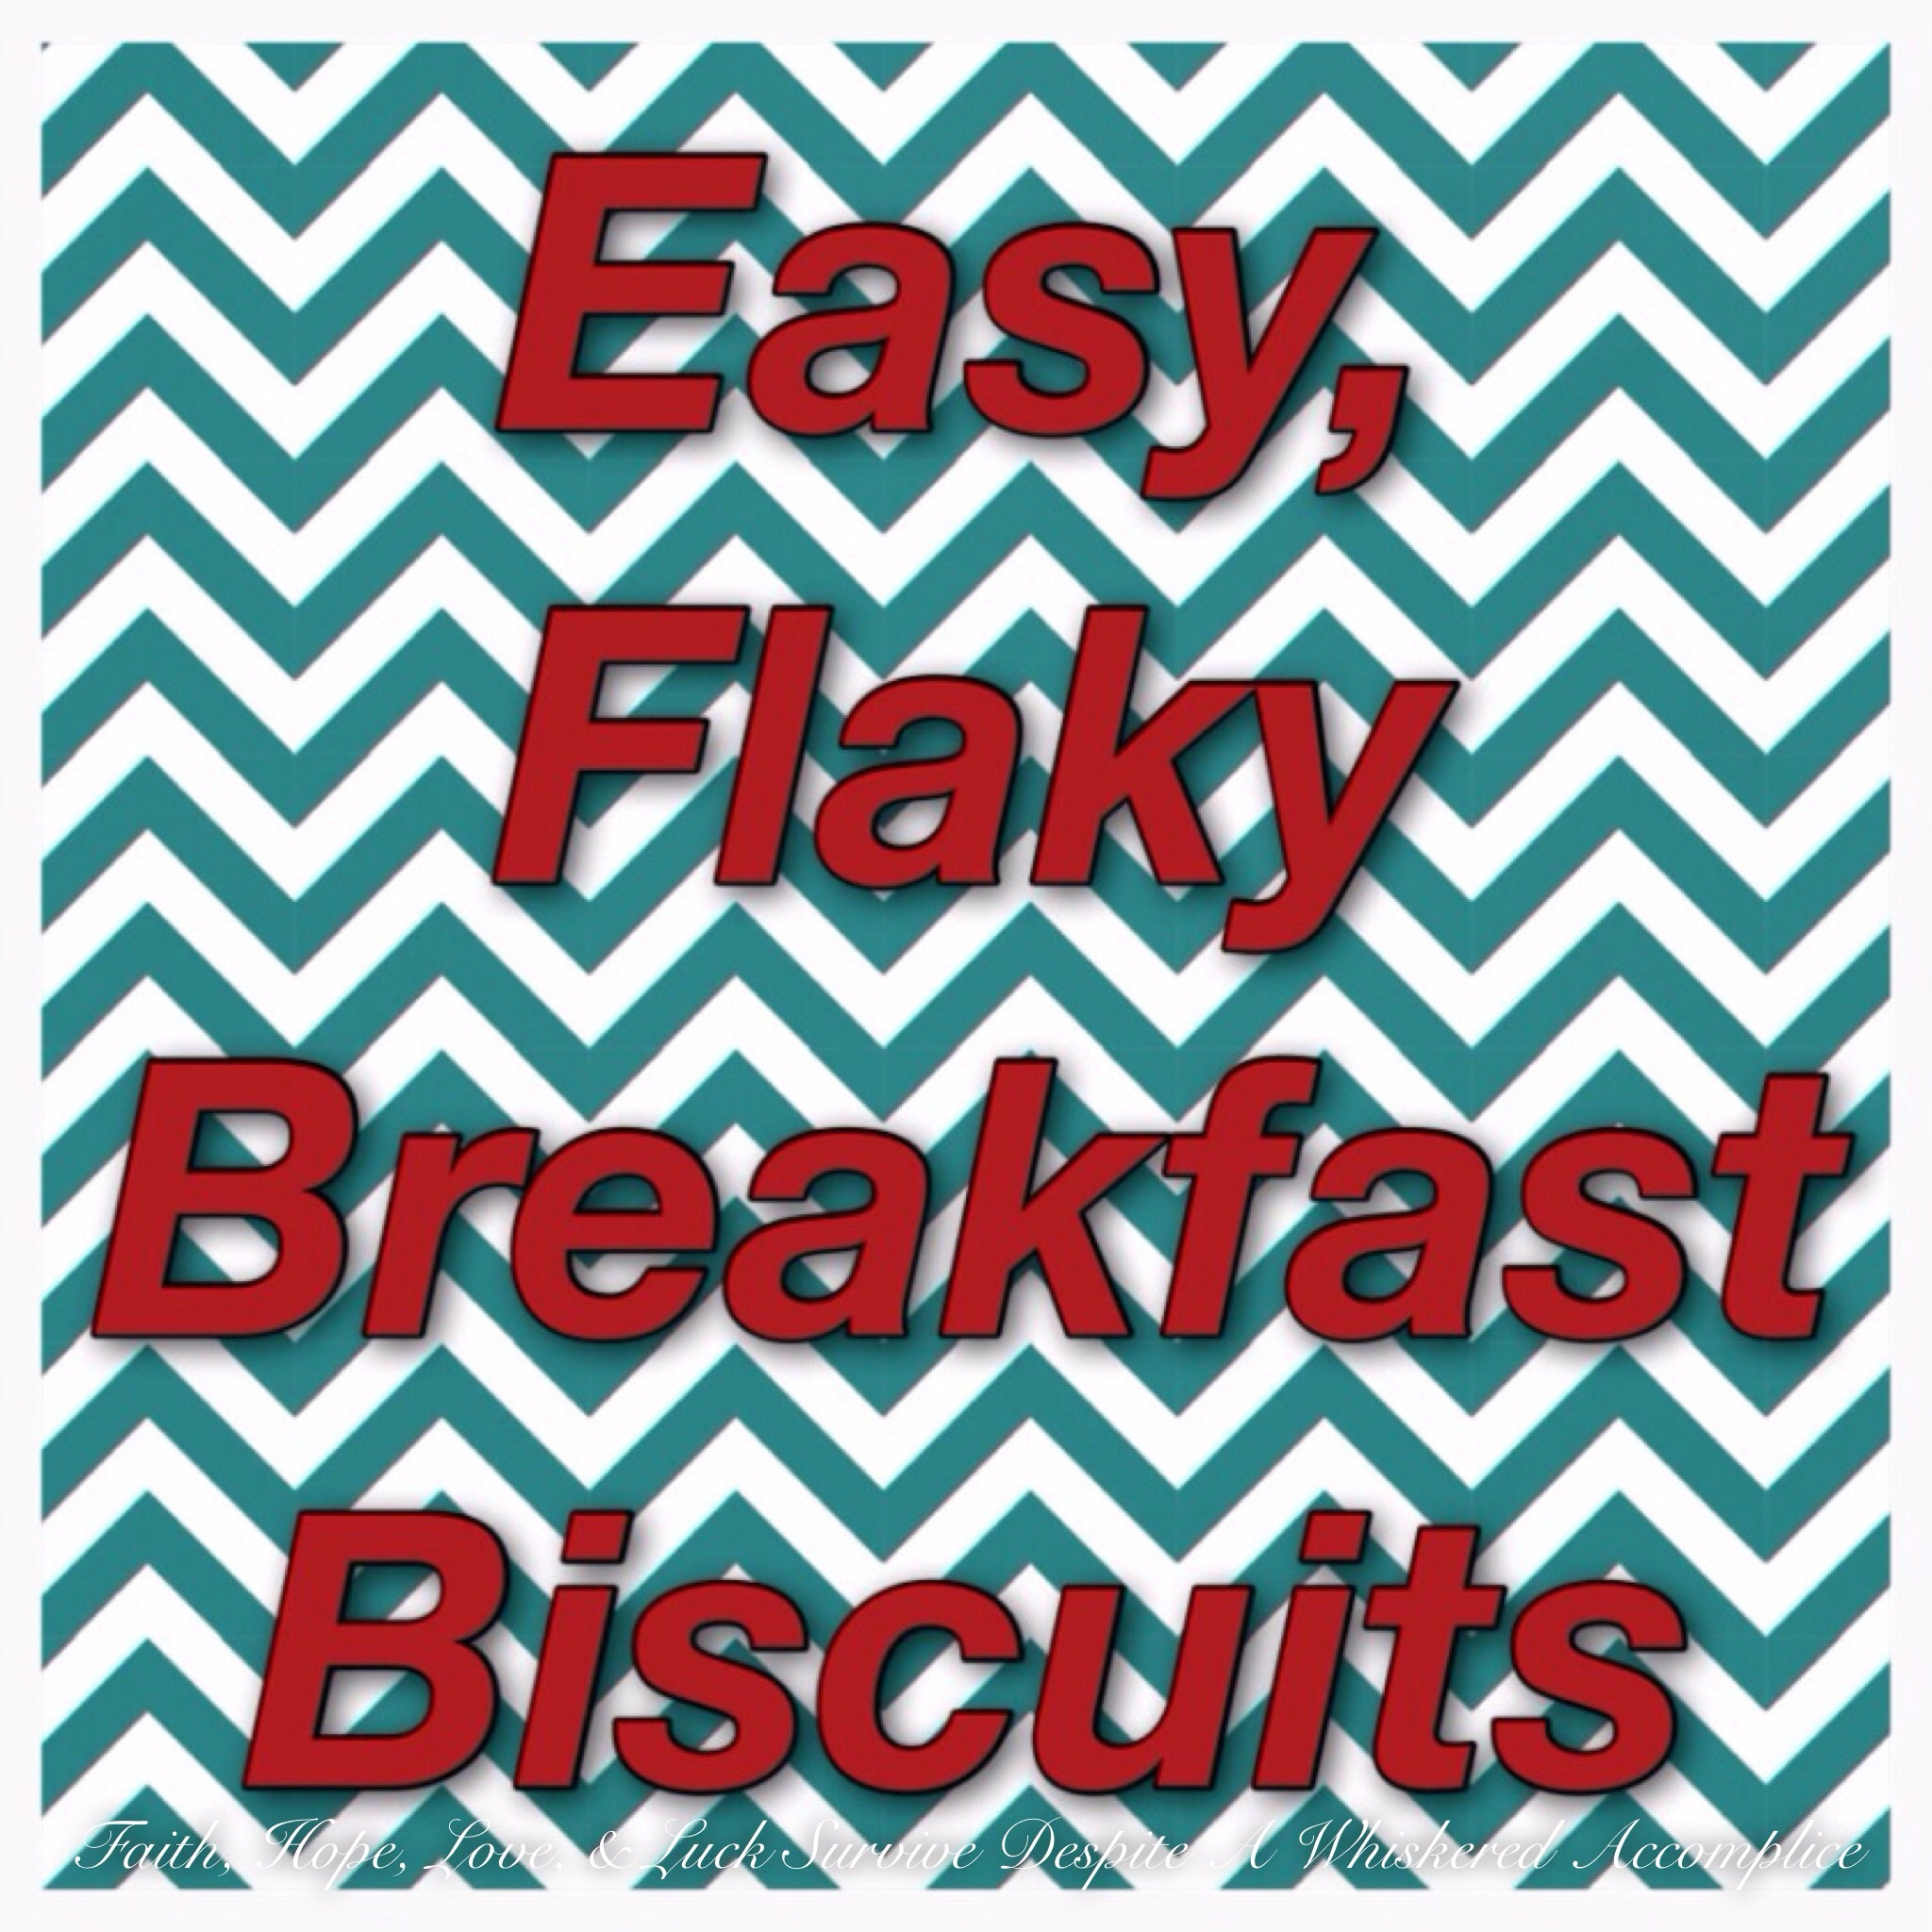 Easy, Flaky Breakfast Biscuits